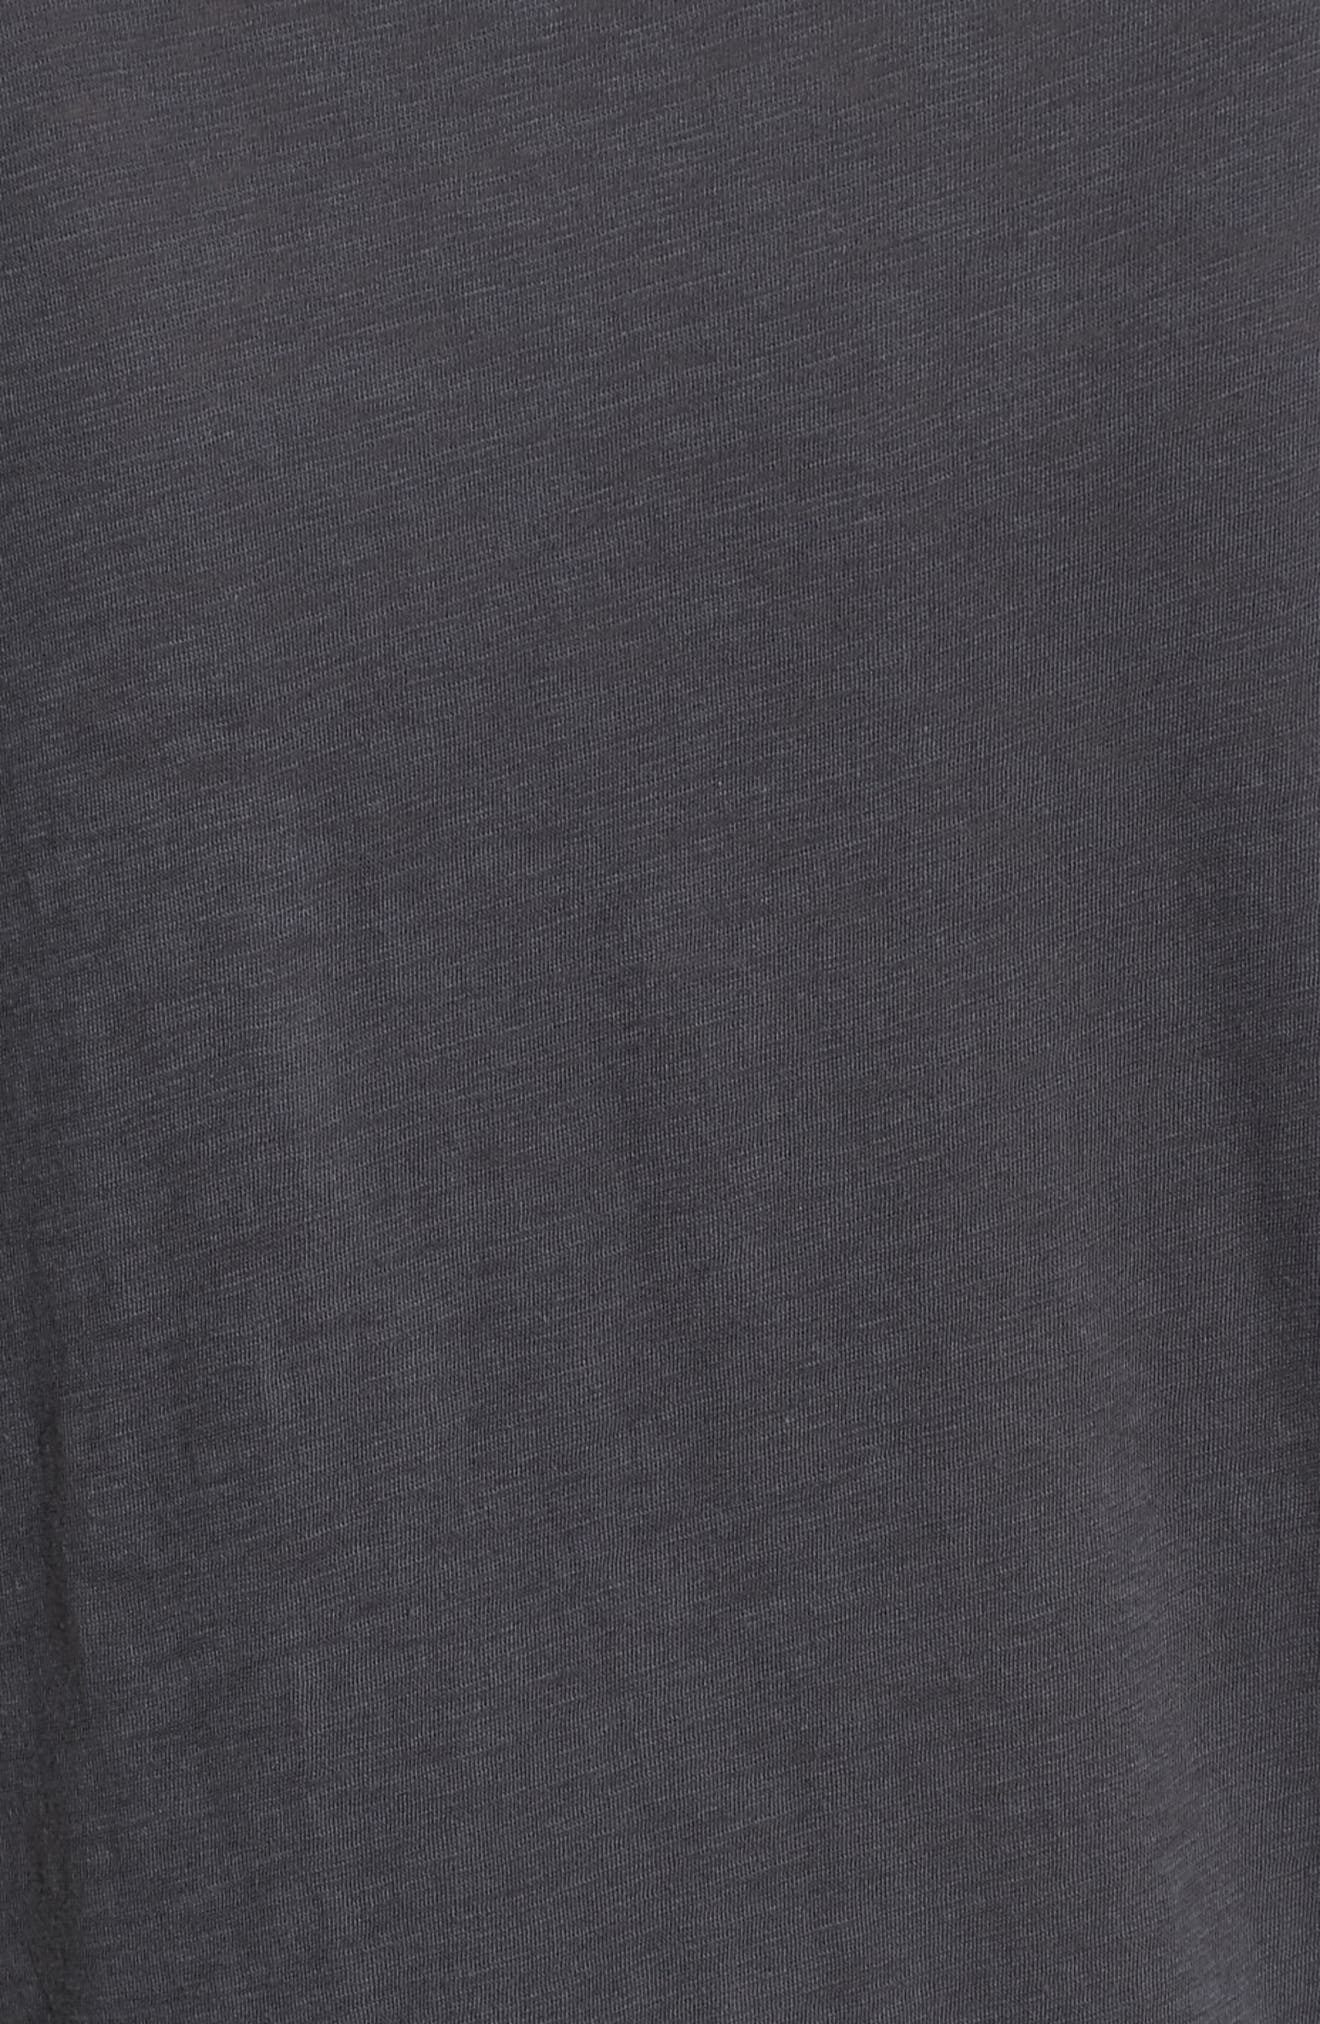 Knotted Tee,                             Alternate thumbnail 50, color,